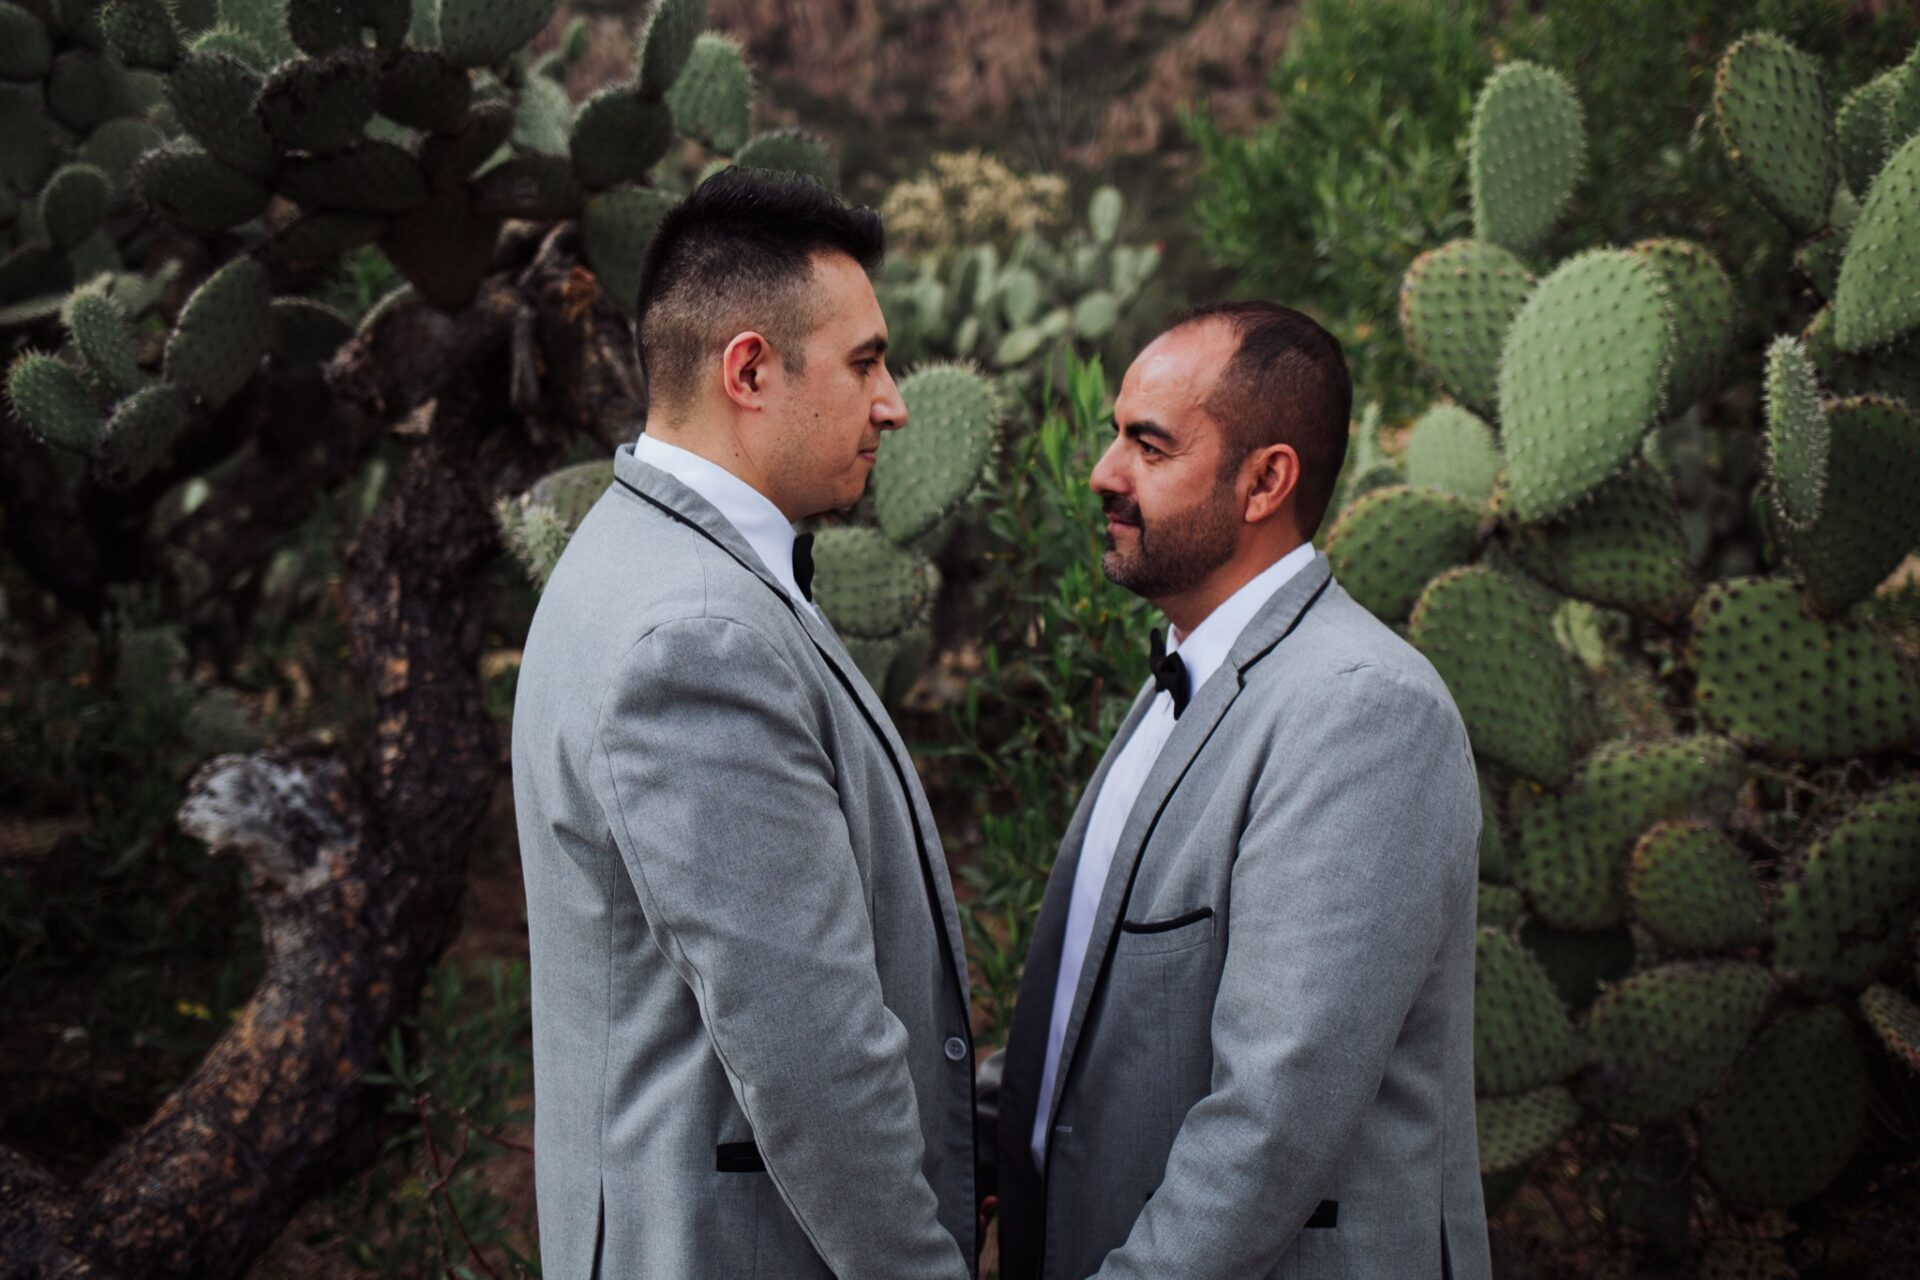 javier_noriega_fotografo_bodas_save_the_date_preboda_zacatecas_wedding_photographer9